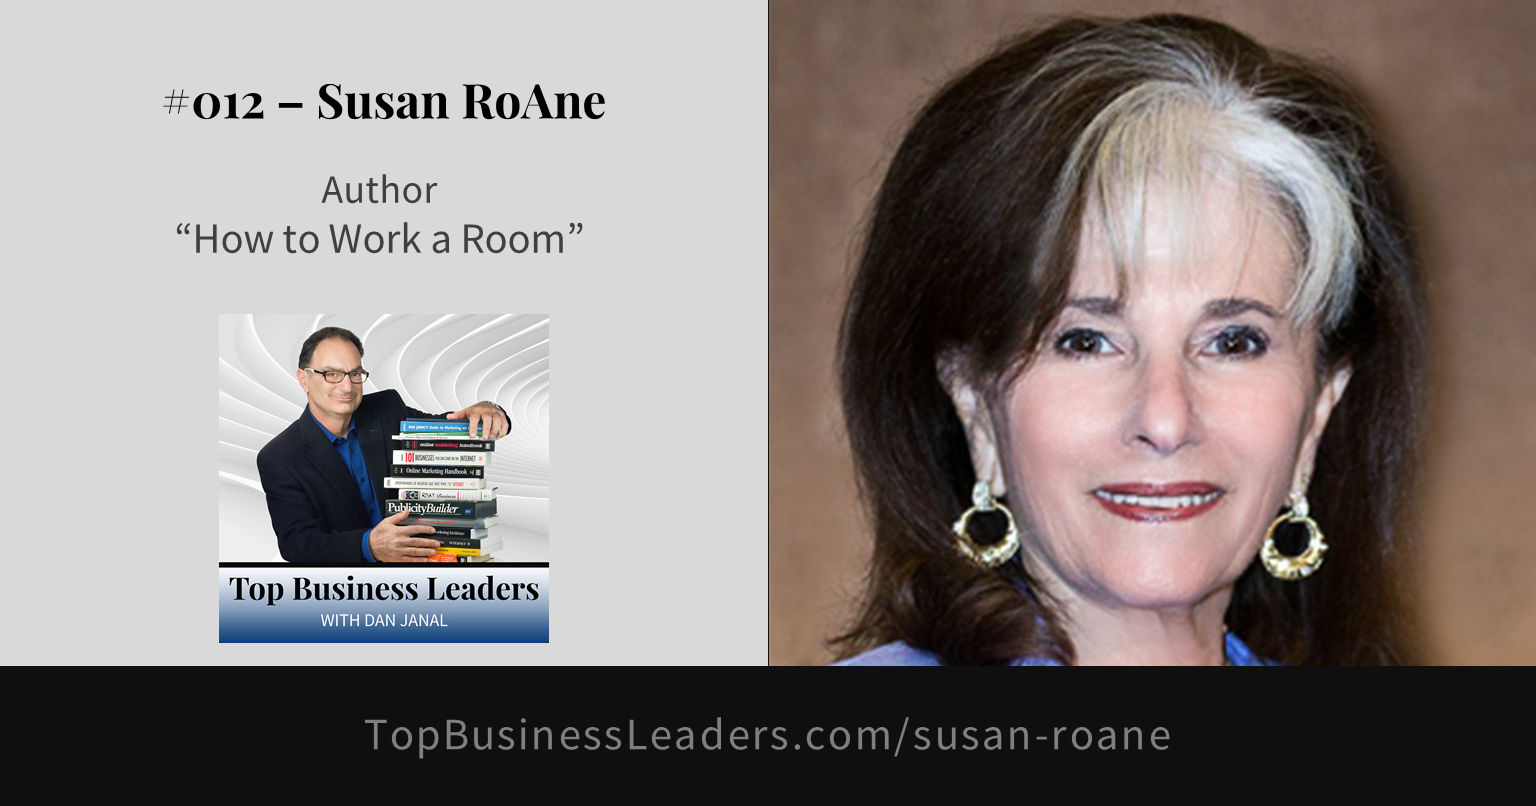 susan-roane-author-how-to-work-a-room